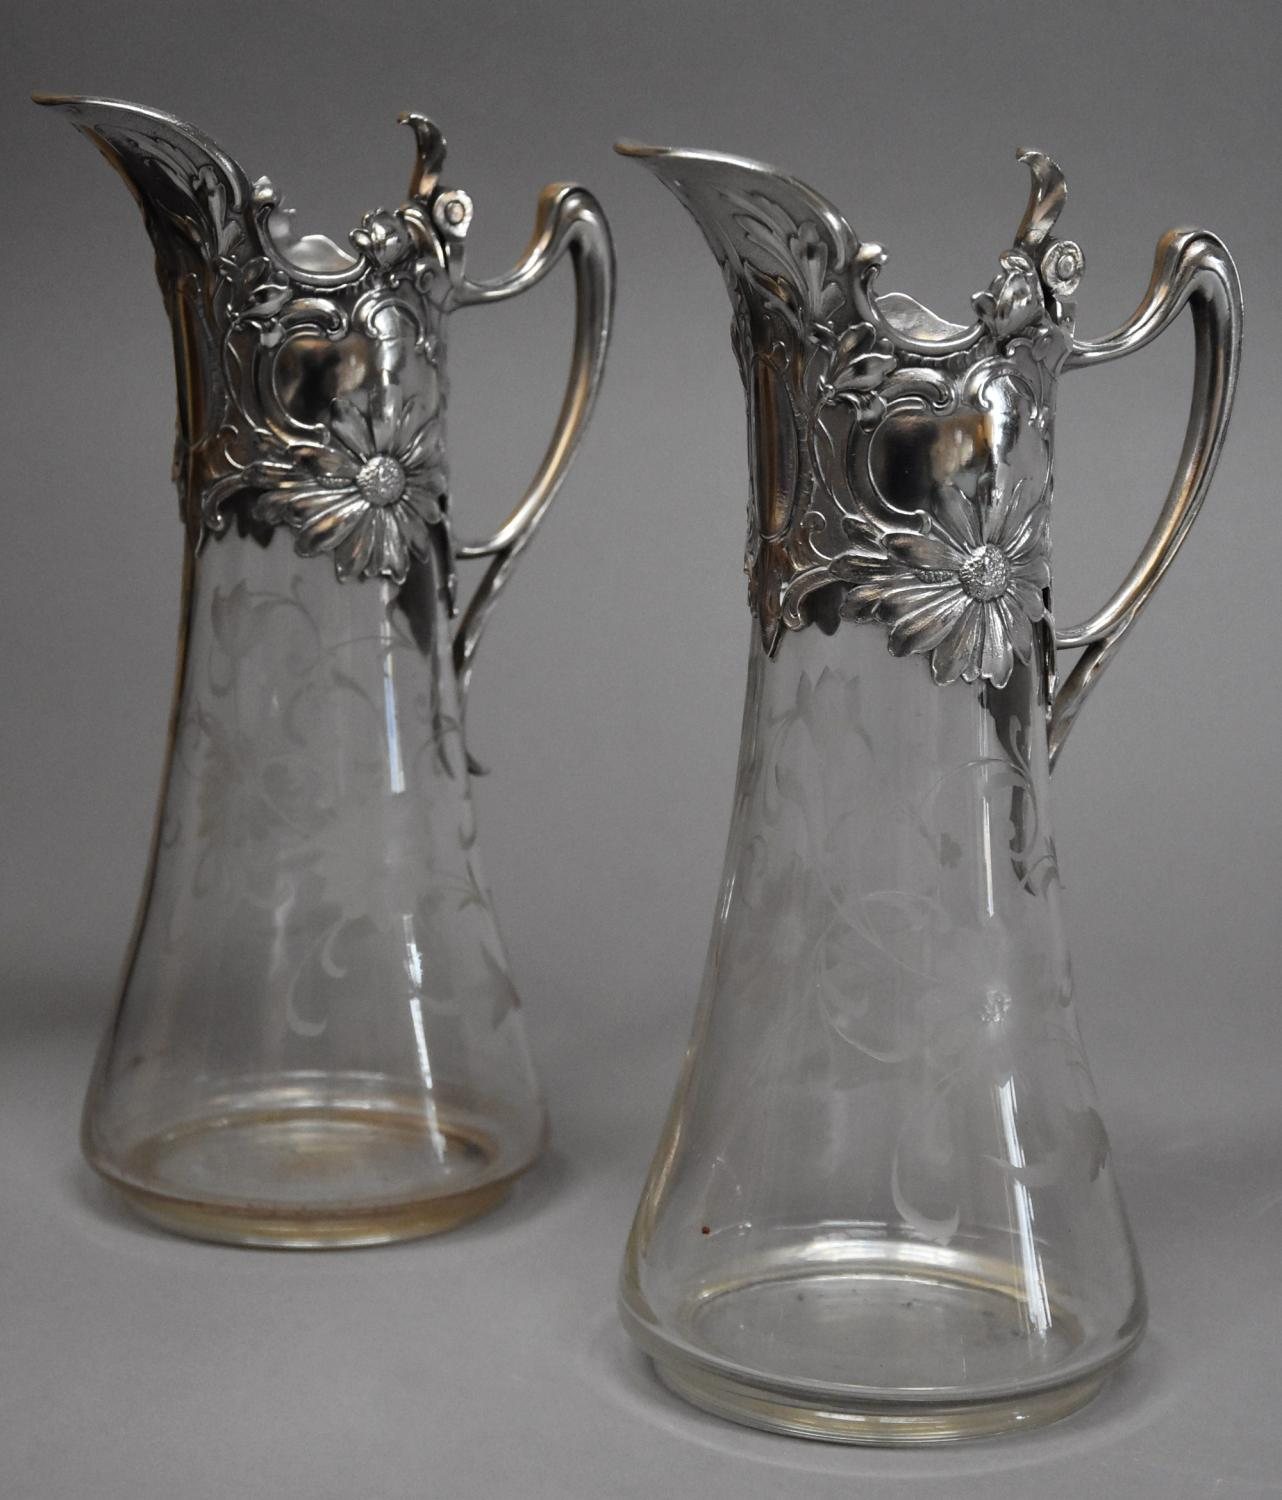 Pair of late 19thc Art Nouveau claret jugs